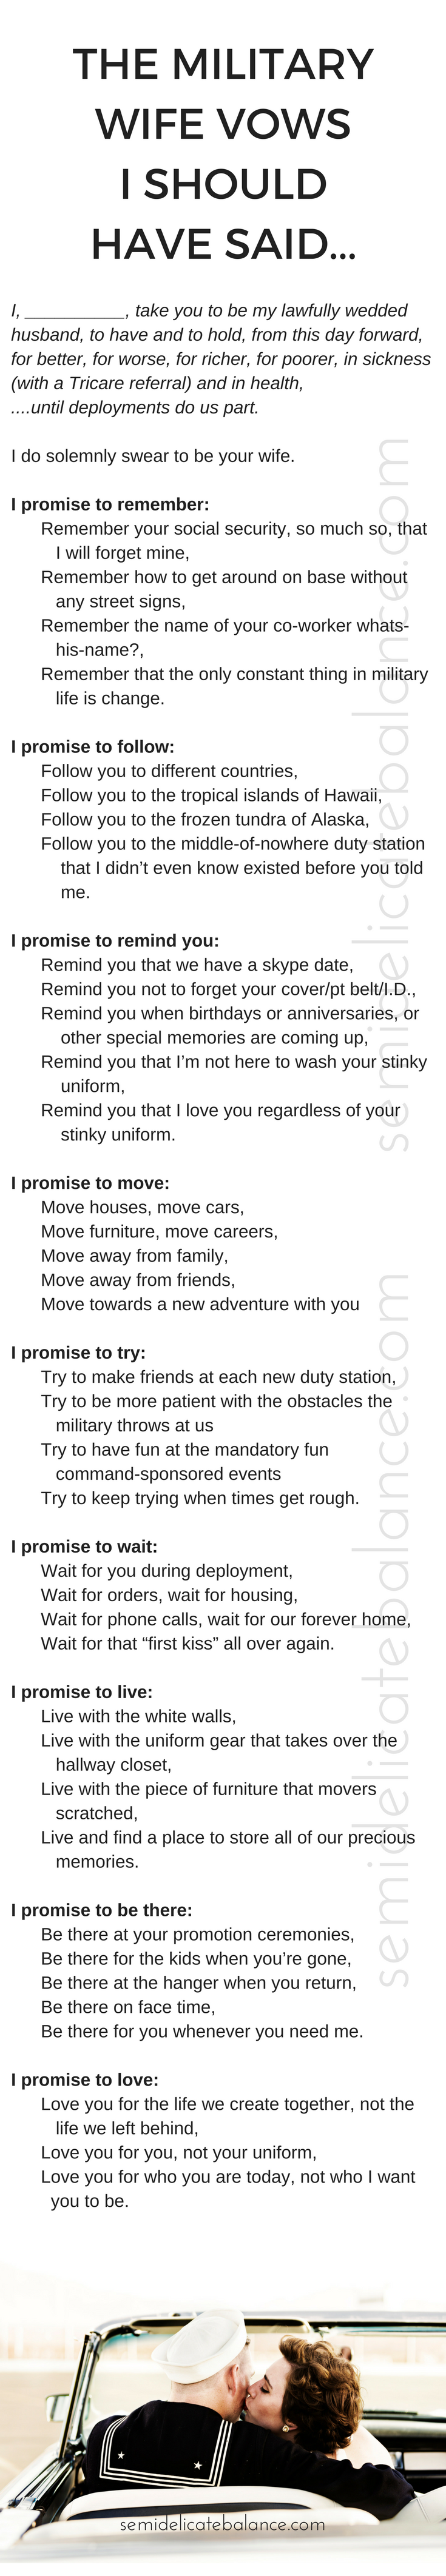 The Military Wife Vows I Should Have Said, vows copy